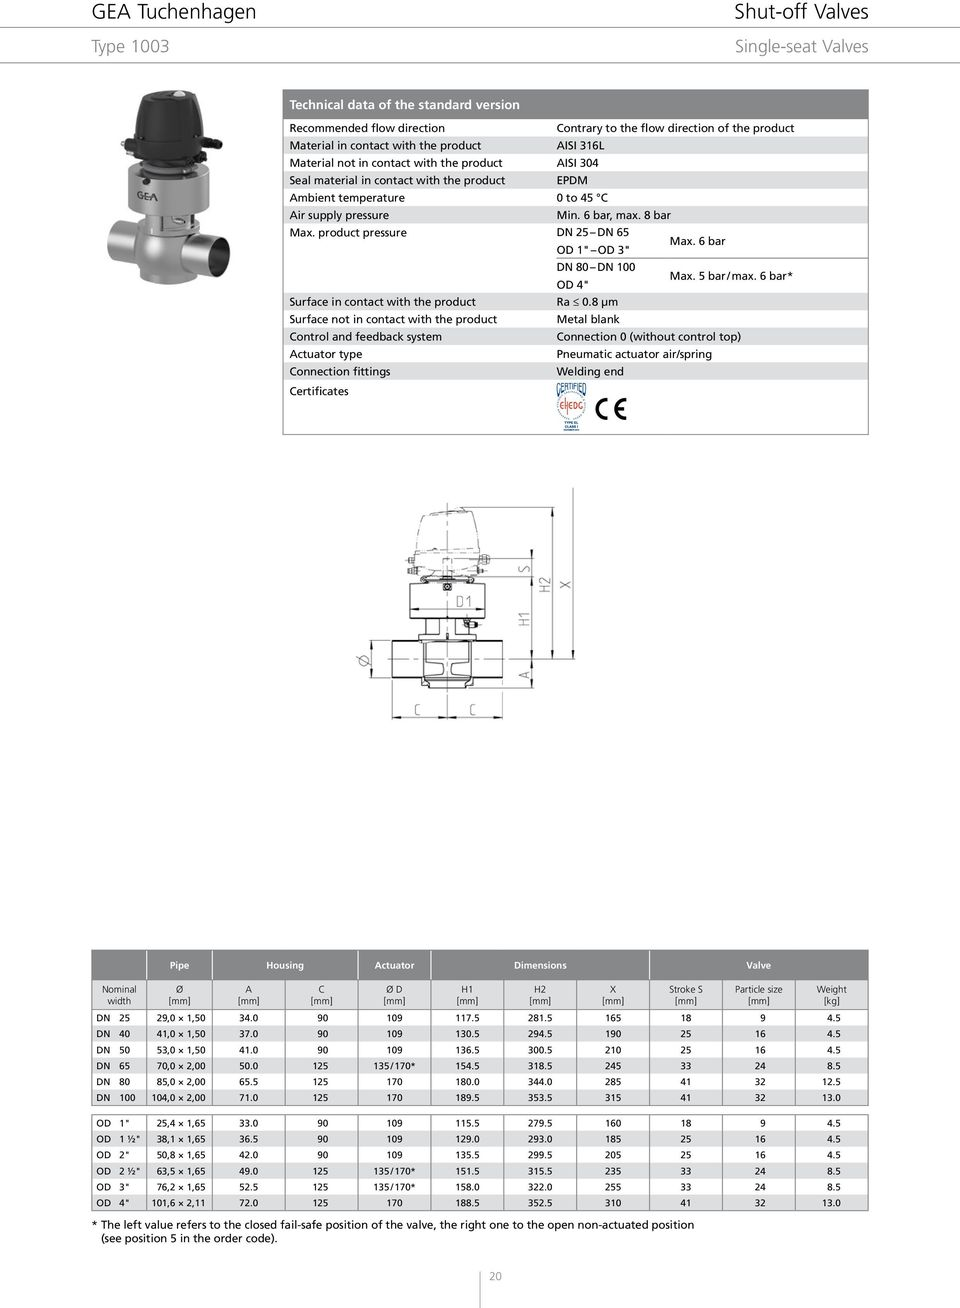 hight resolution of product pressure dn 25 dn 65 od 1 od 3 max 6 bar